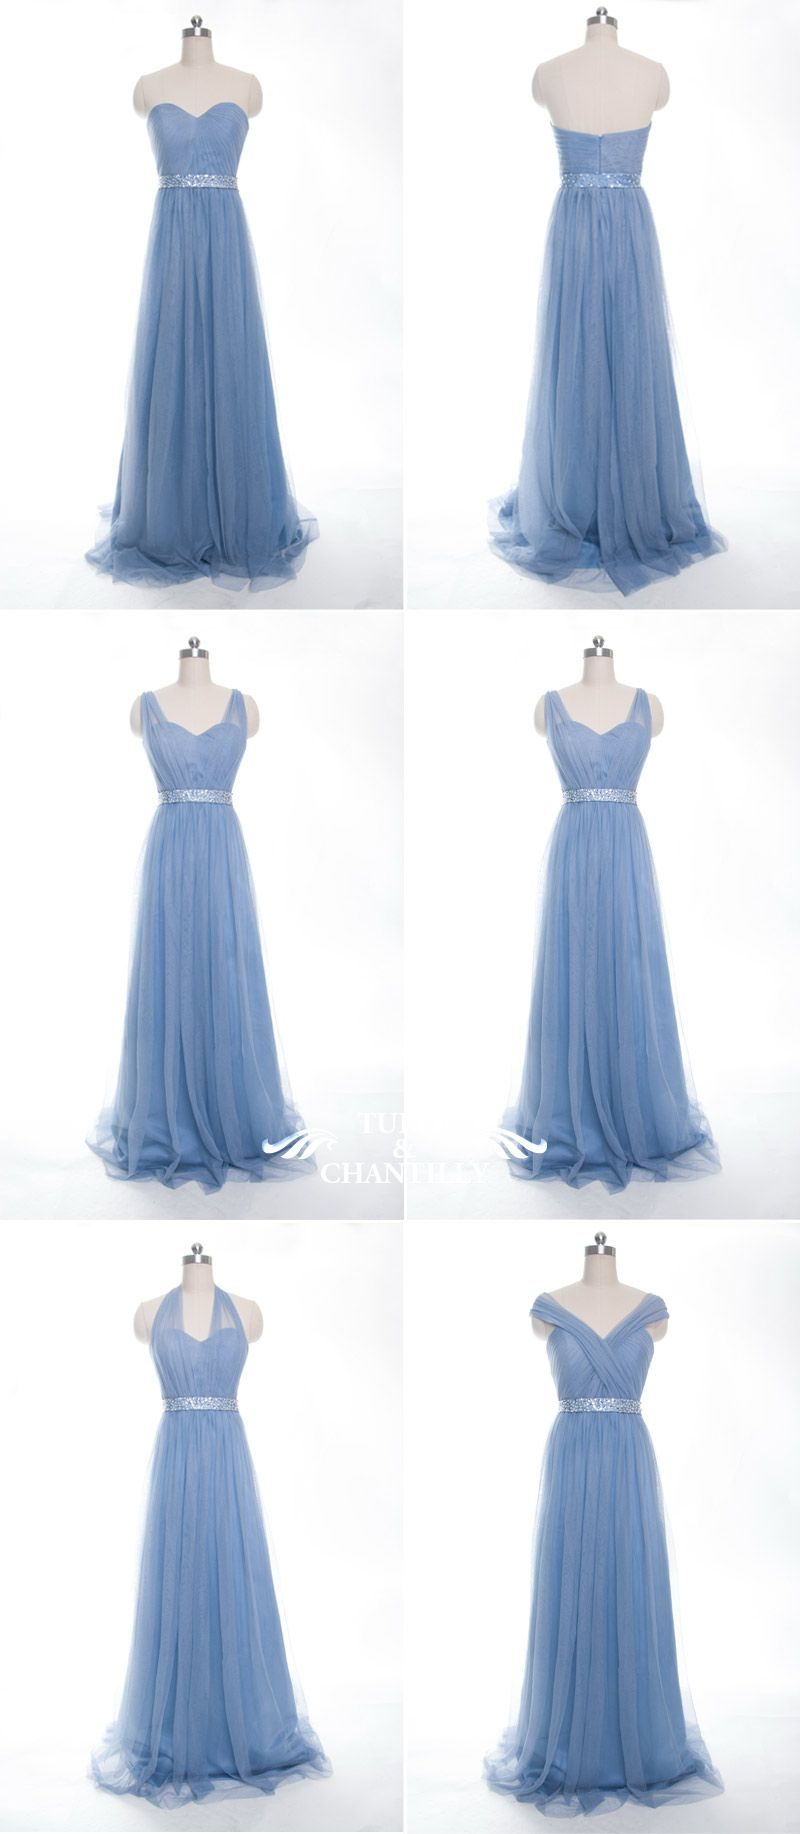 Long convertible tulle windsor blue bridesmaid dresses for spring